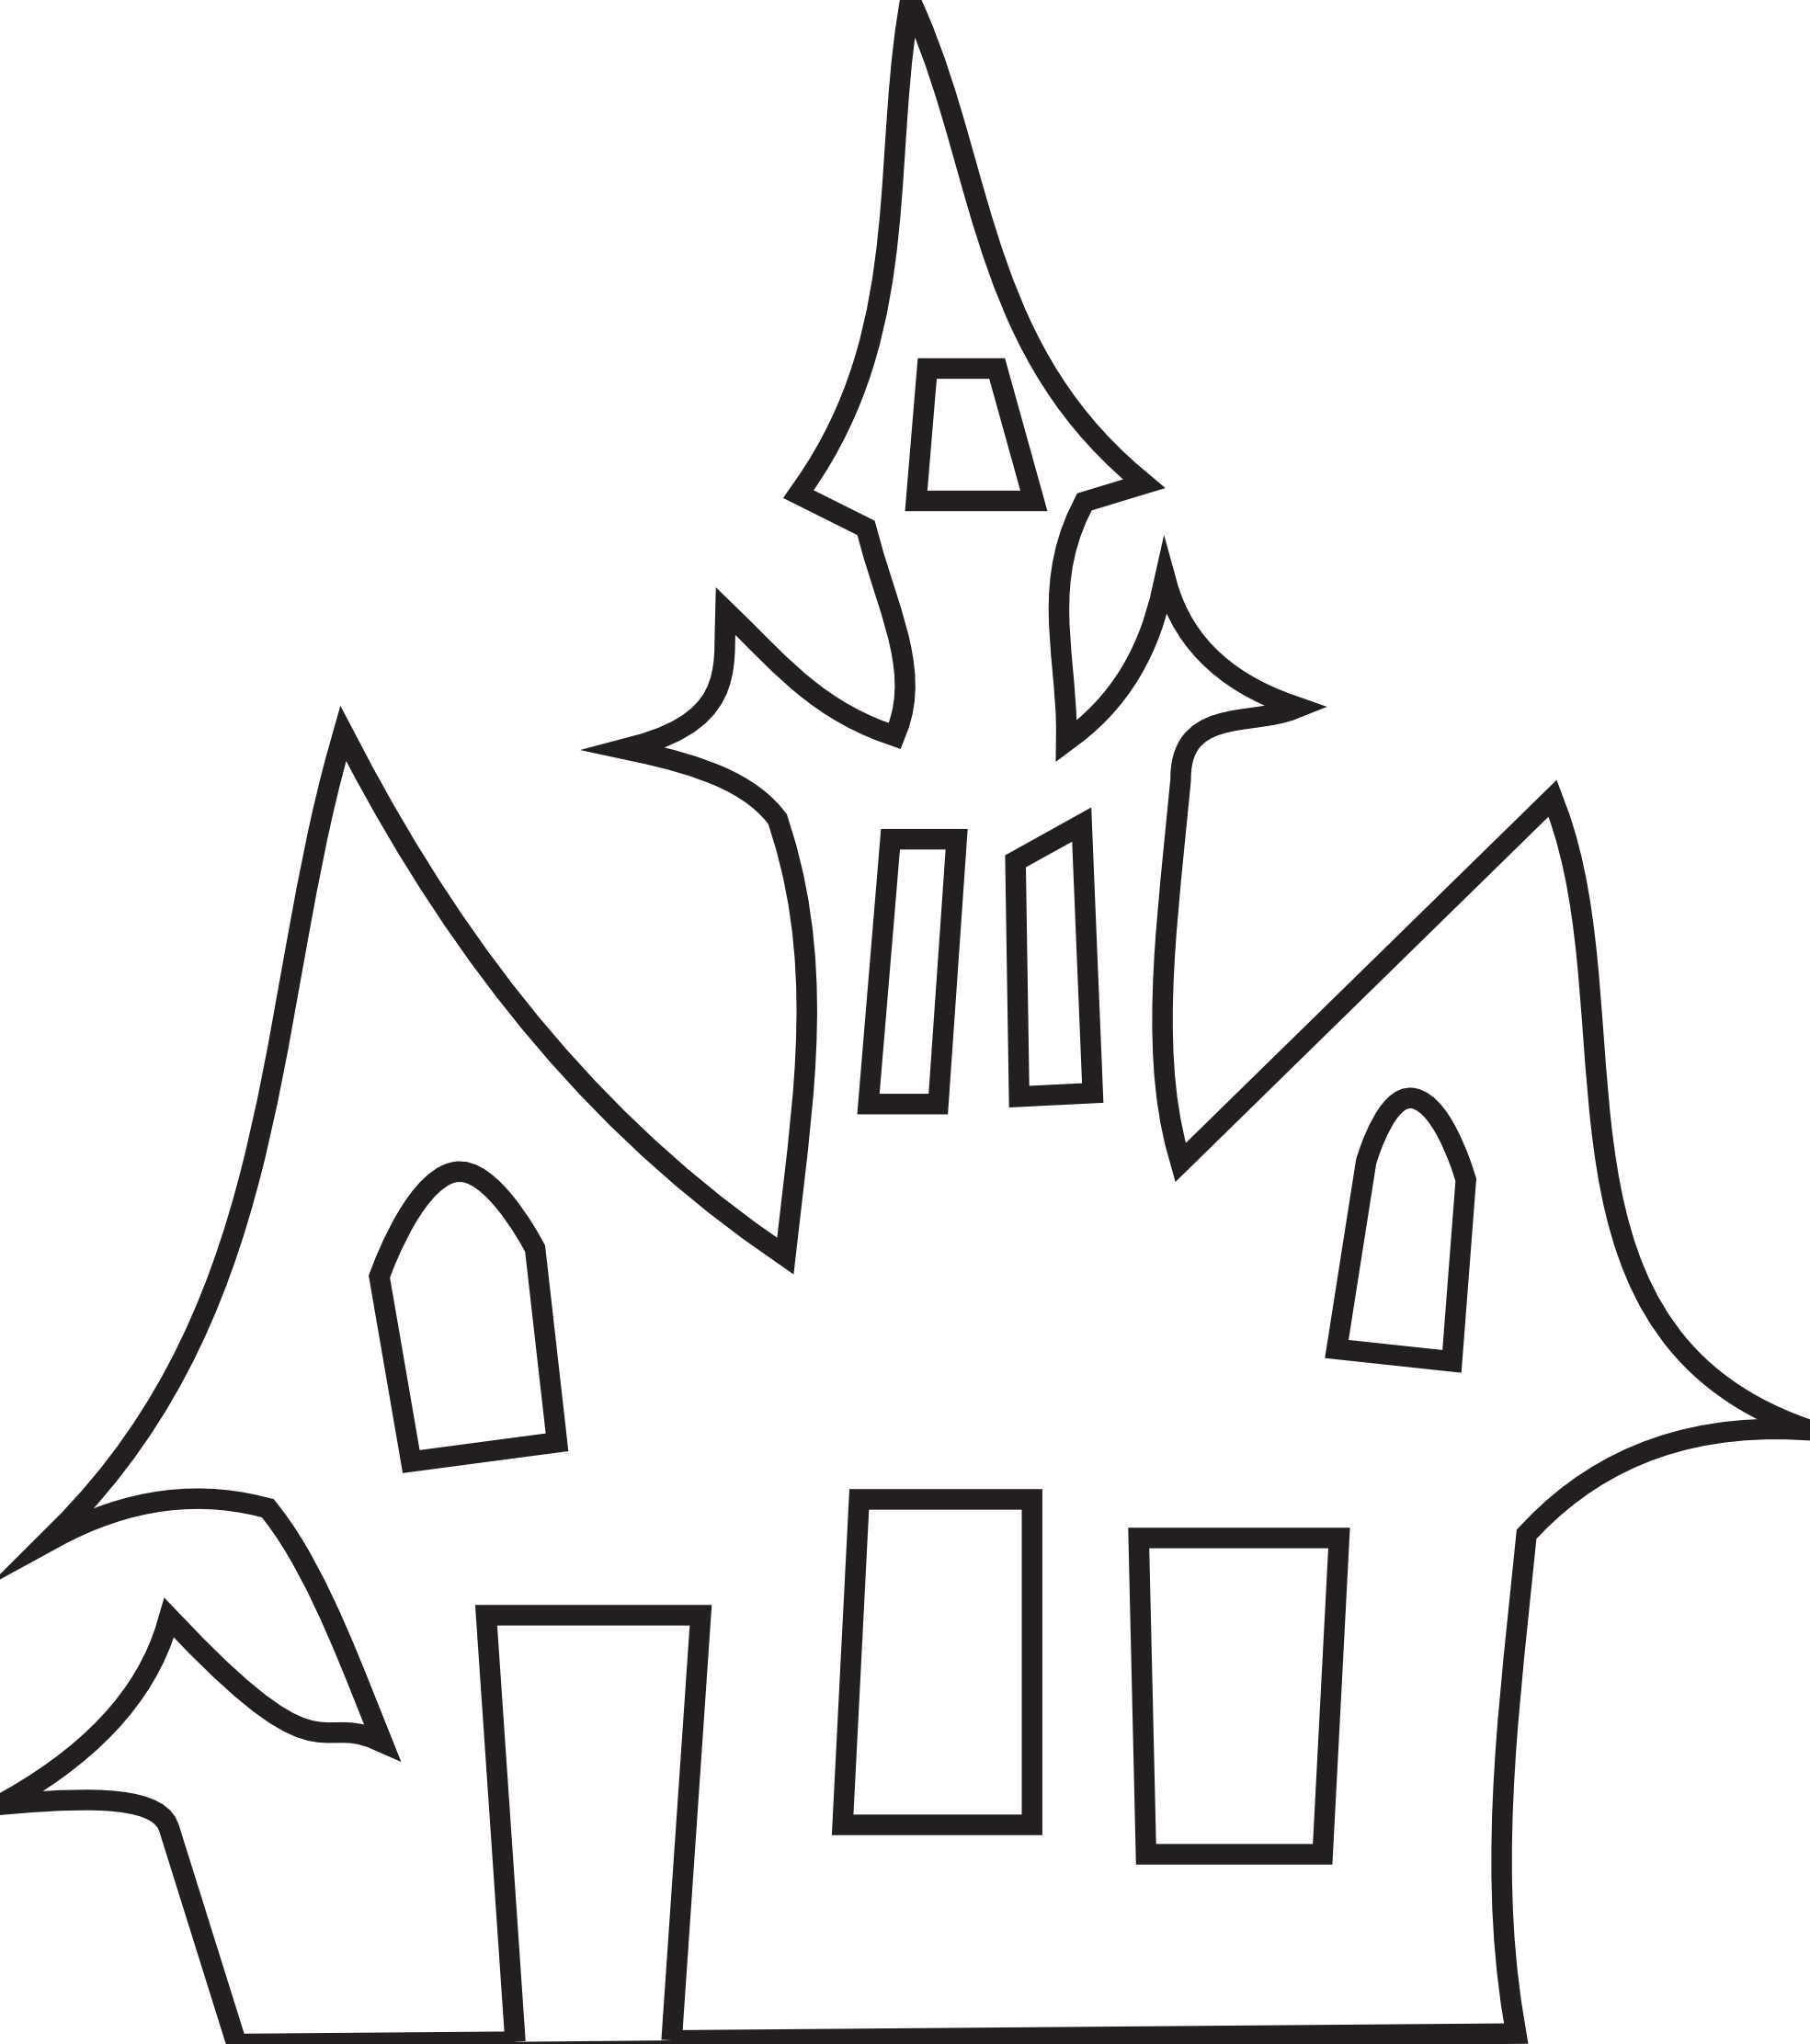 Halloween house clipart images svg royalty free stock 28+ Collection of Halloween House Clipart Black And White | High ... svg royalty free stock